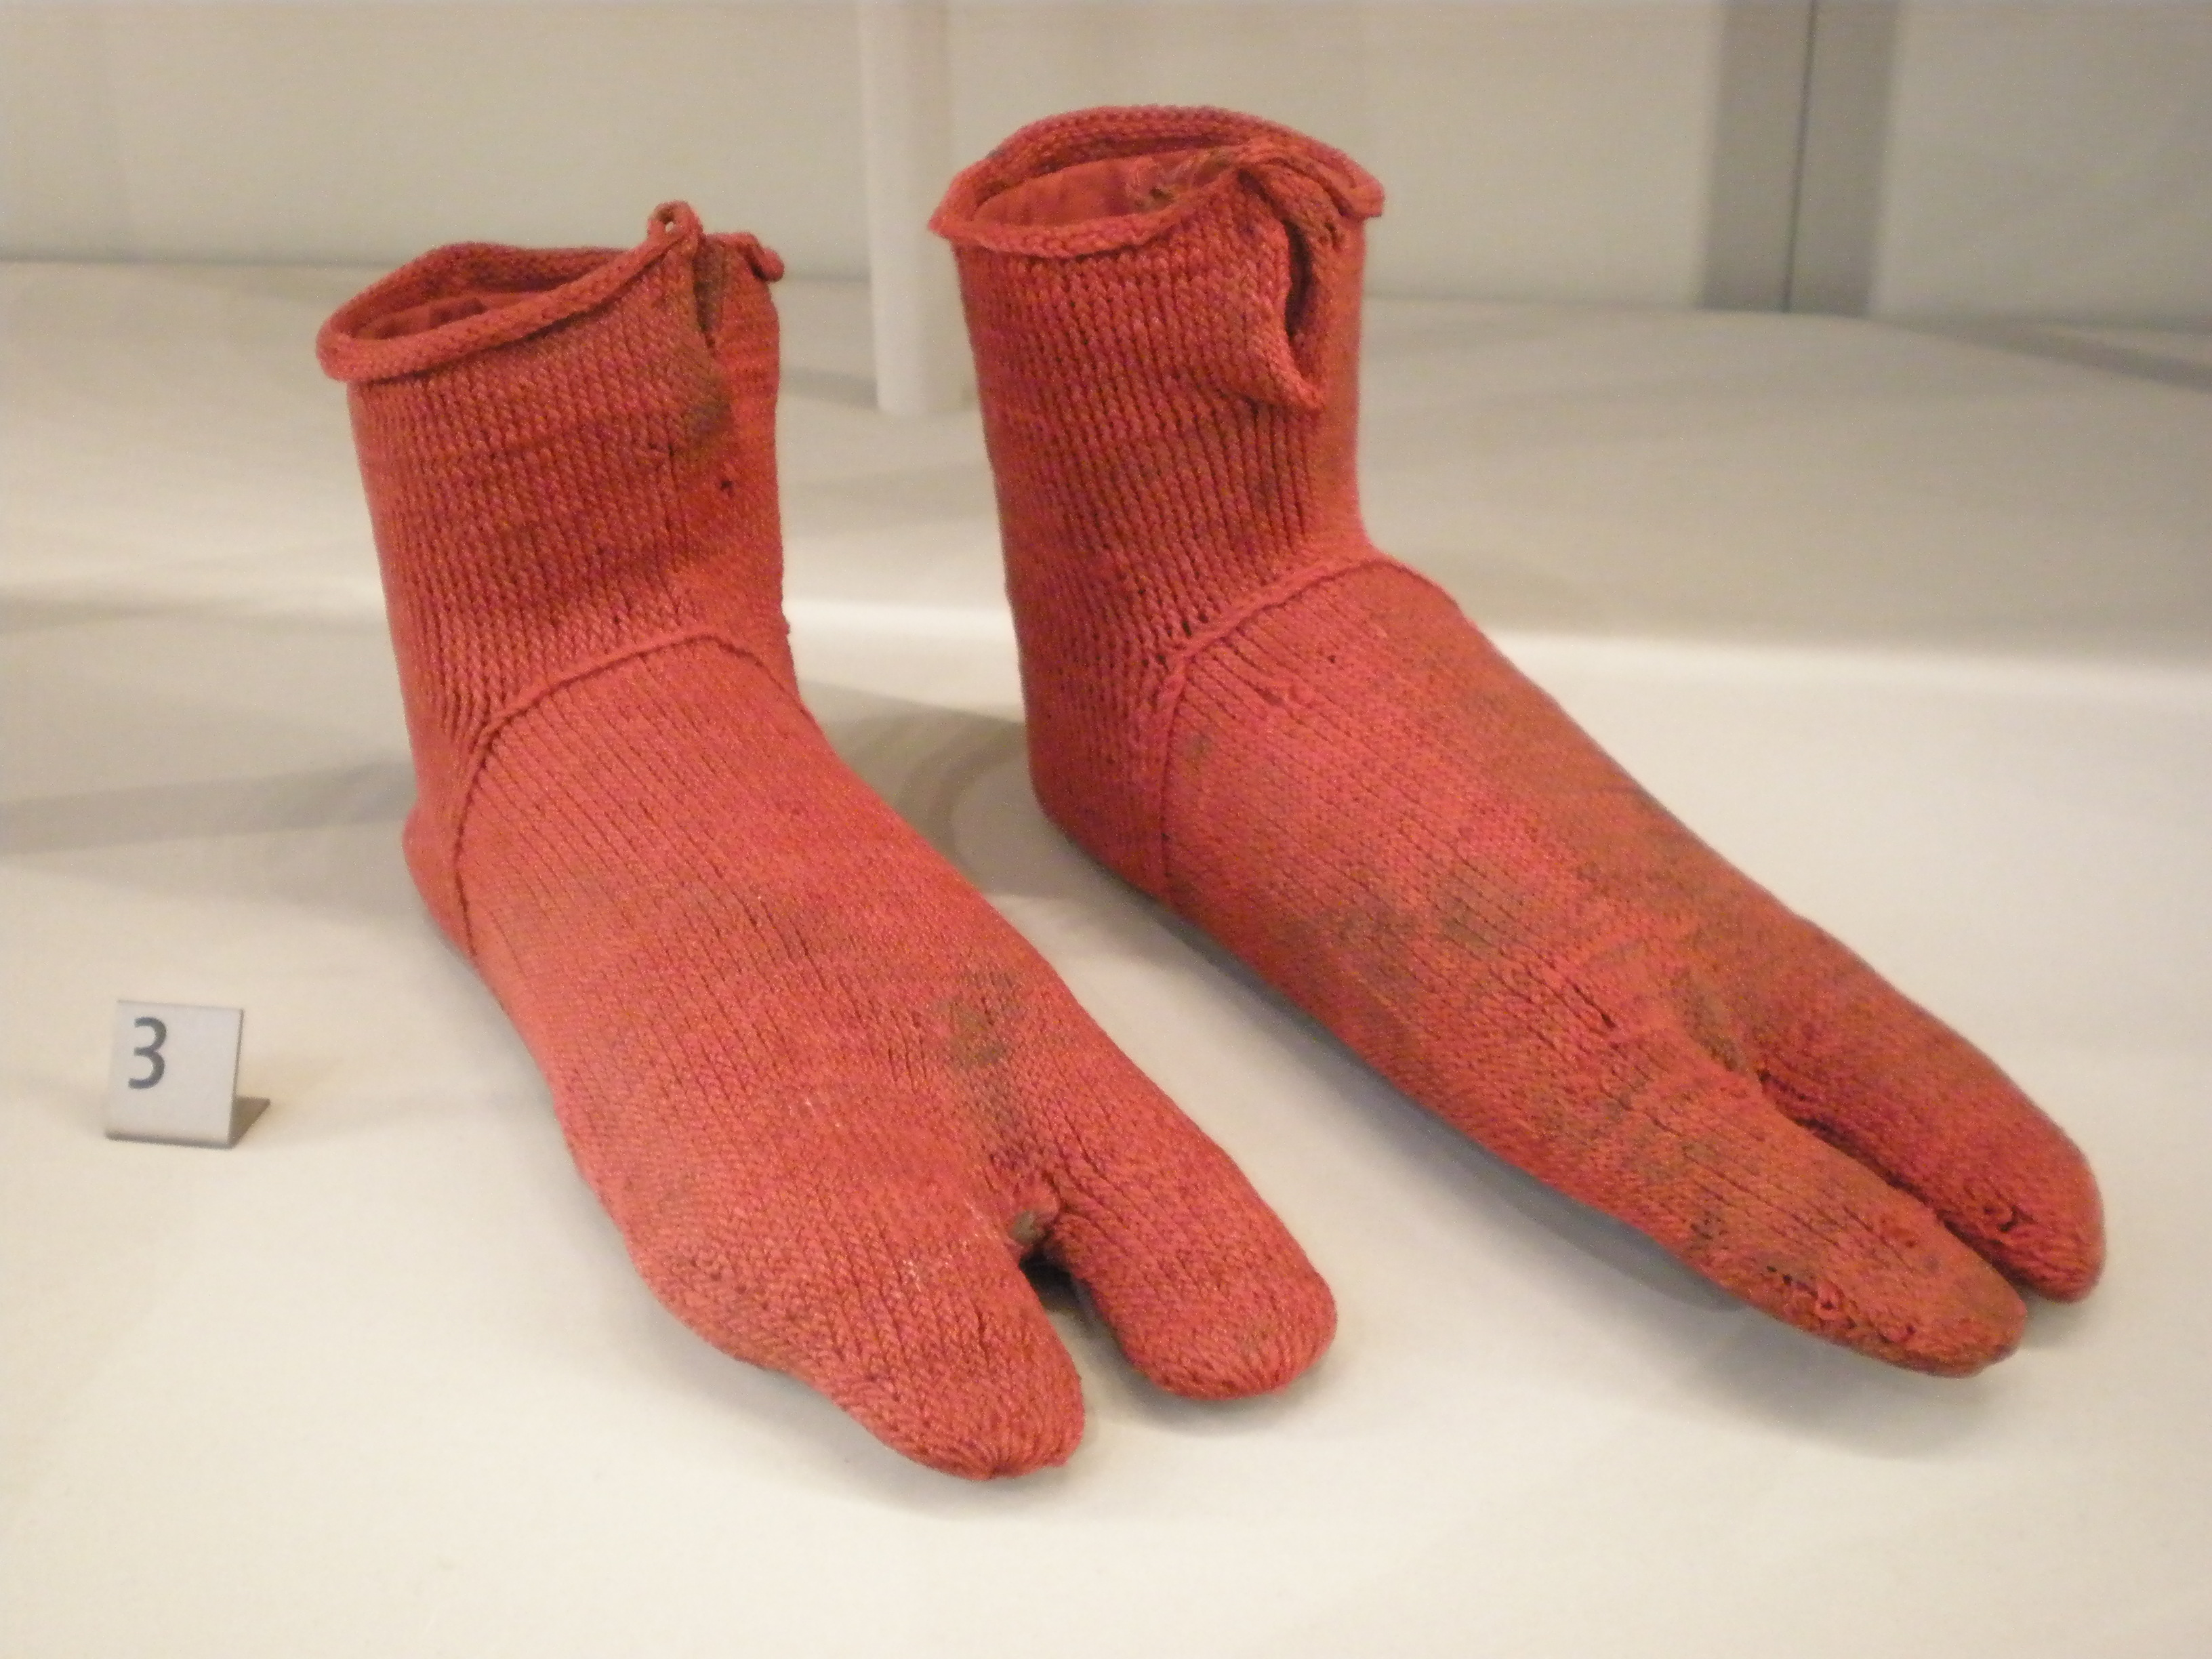 6c947f83c9308 The earliest known surviving pair of socks, created by naalbinding. Dating  from 300–500, these were excavated from Oxyrhynchus on the Nile in Egypt.